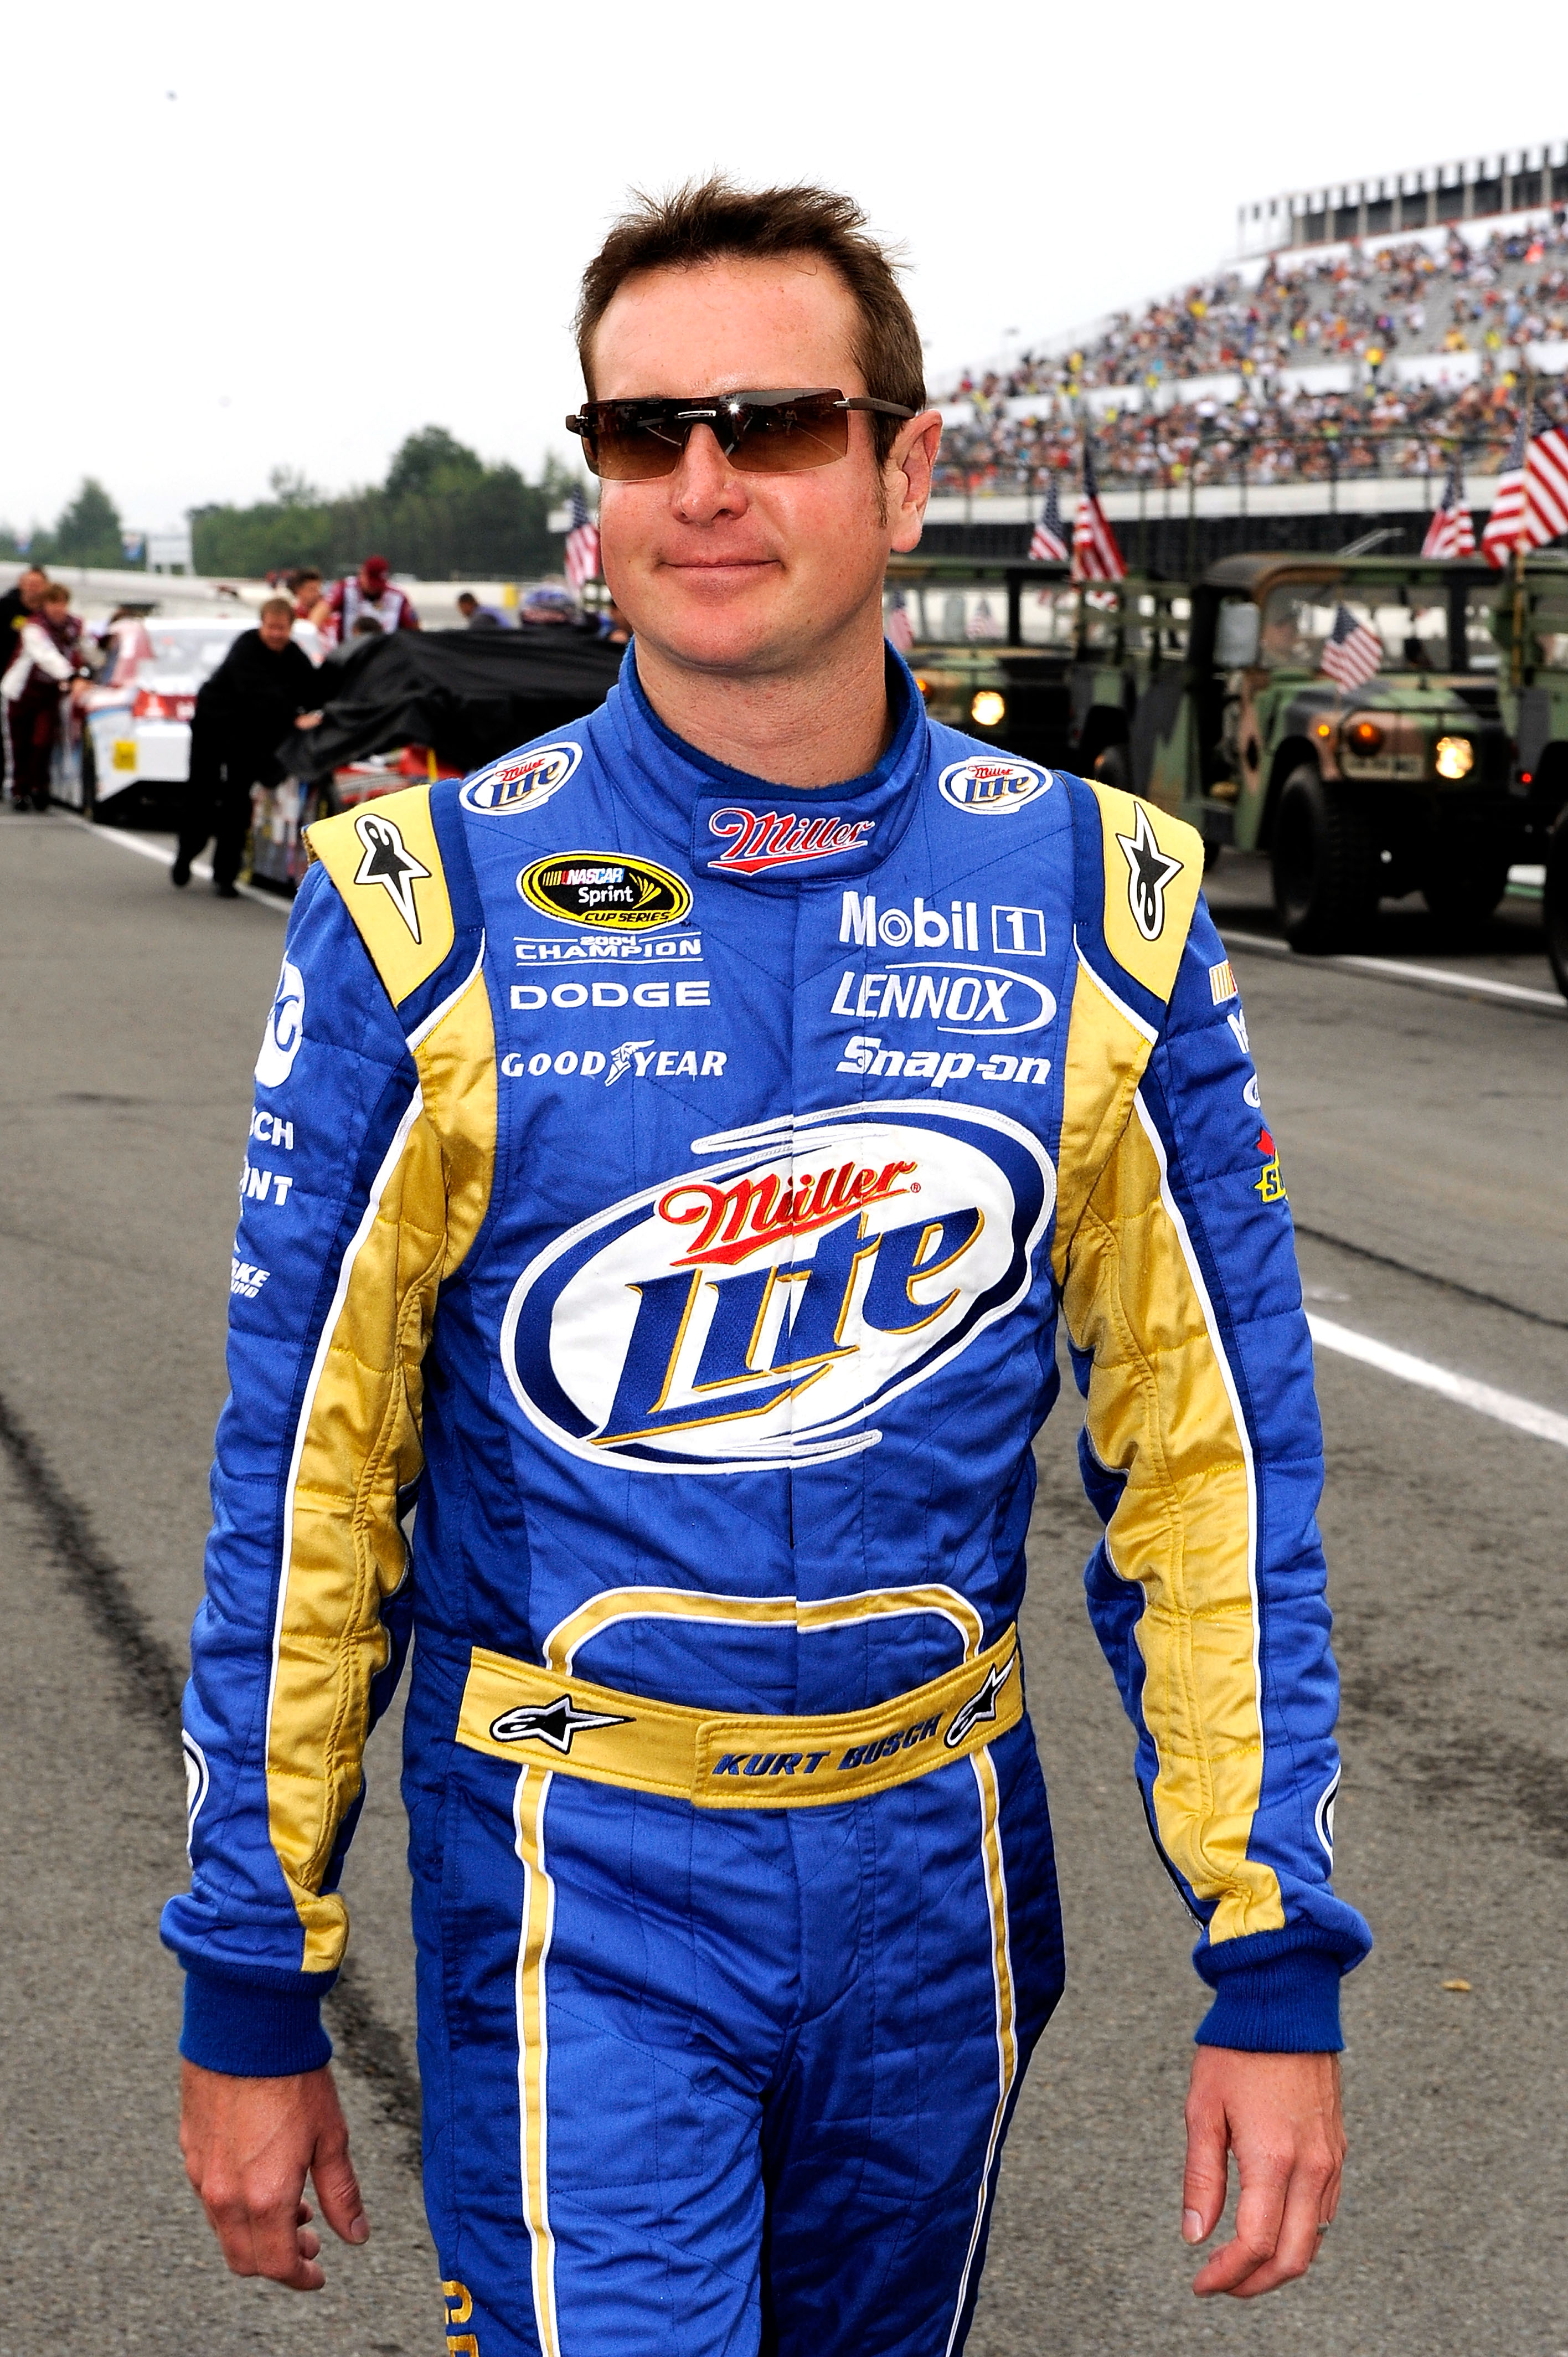 LONG POND, PA - AUGUST 01:  Kurt Busch, driver of the #2 Miller Lite/Vortex Dodge, walks on the grid prior to the NASCAR Sprint Cup Series Sunoco Red Cross Pennsylvania 500 at Pocono Raceway on August 1, 2010 in Long Pond, Pennsylvania.  (Photo by Rusty J